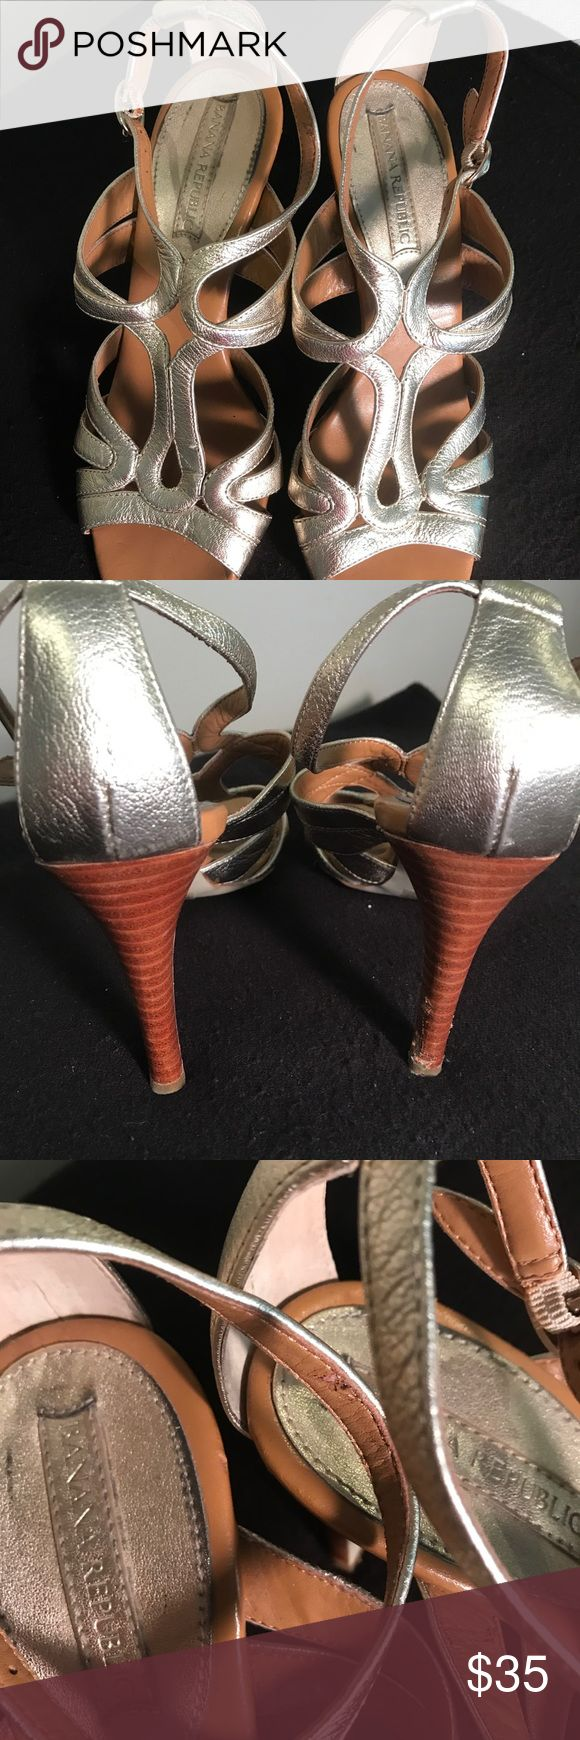 EUC Banana Republic gold metallic heels Sexy heels with metallic strapping creating a unique design that buckles on the ankle. Wear evident on the sole but inner sole and leather is in excellent condition. Banana Republic Shoes Heels